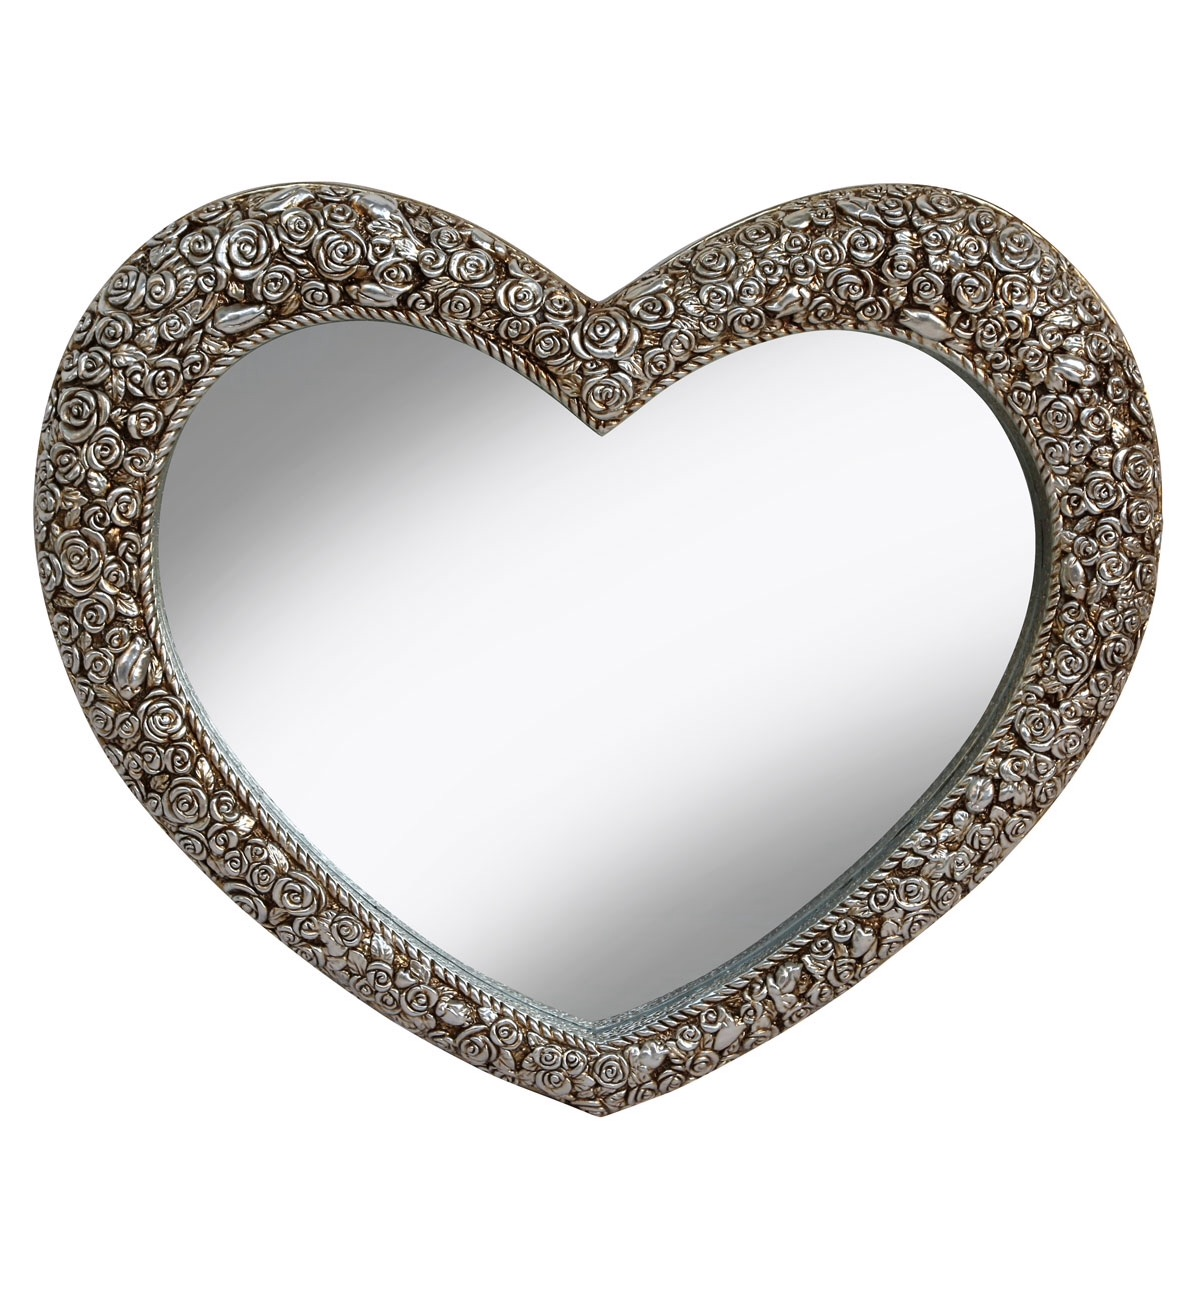 Unique Shaped Mirror Heart Shaped Decorative Framed Mirror In Bronze By